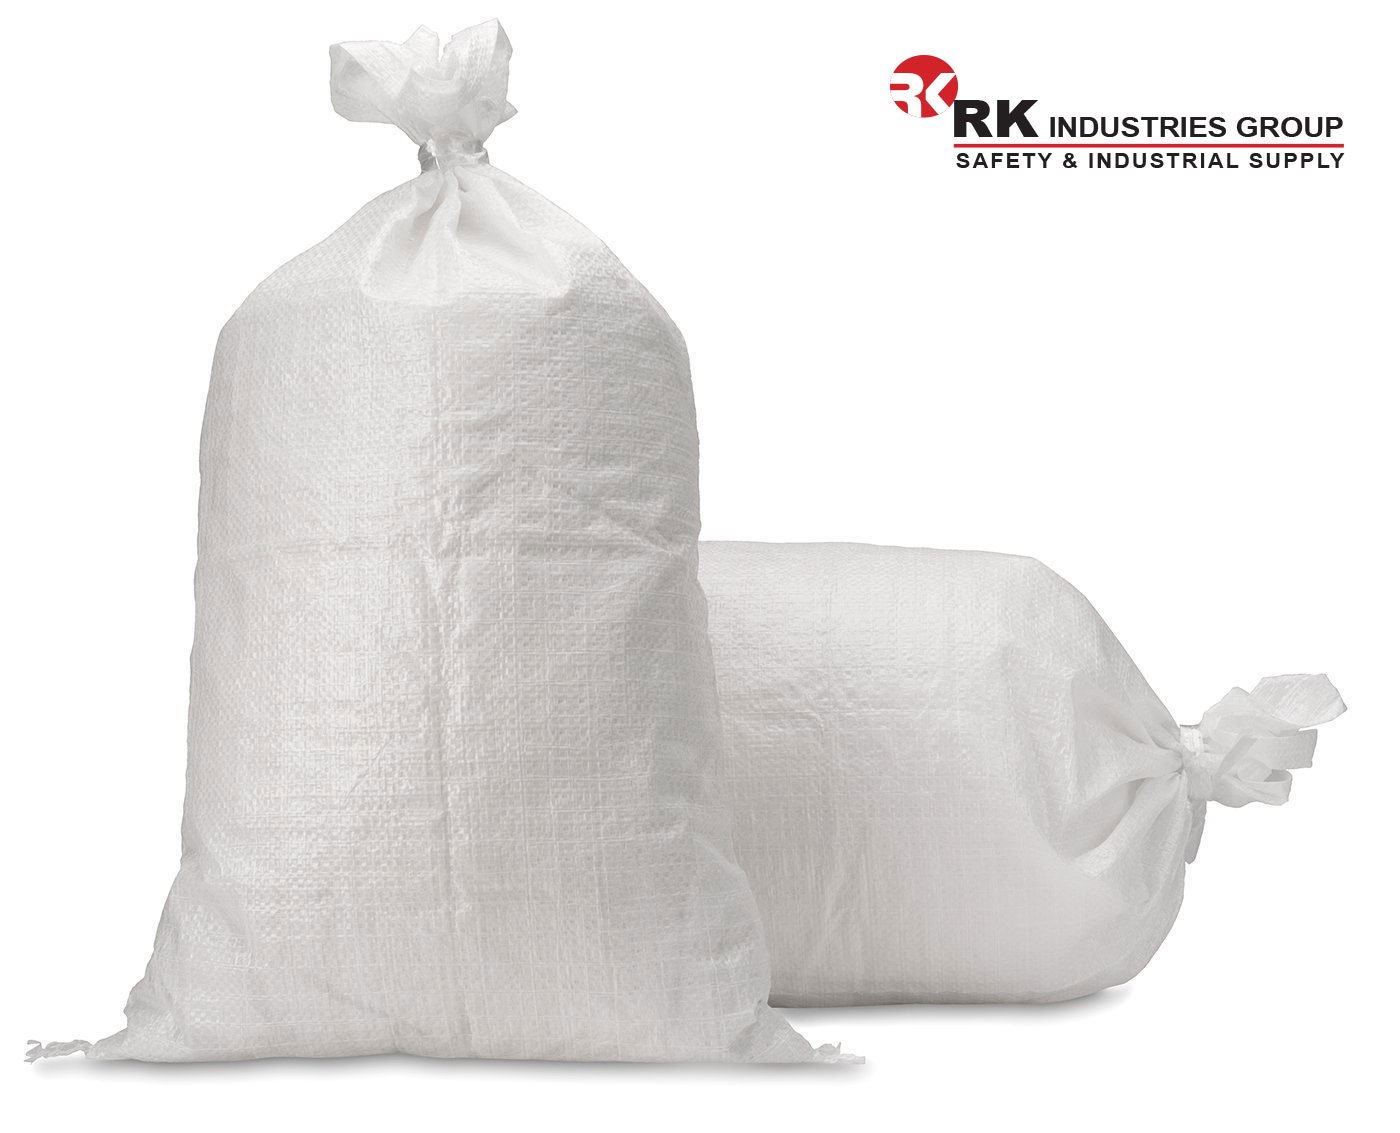 RK Sandbags Empty Woven Polypropylene Sand Bags with Built-in Ties, UV Protection, Dust Proof, Water and Oil Resistant (Size: 18x30, Pack of 100) by RK Safety